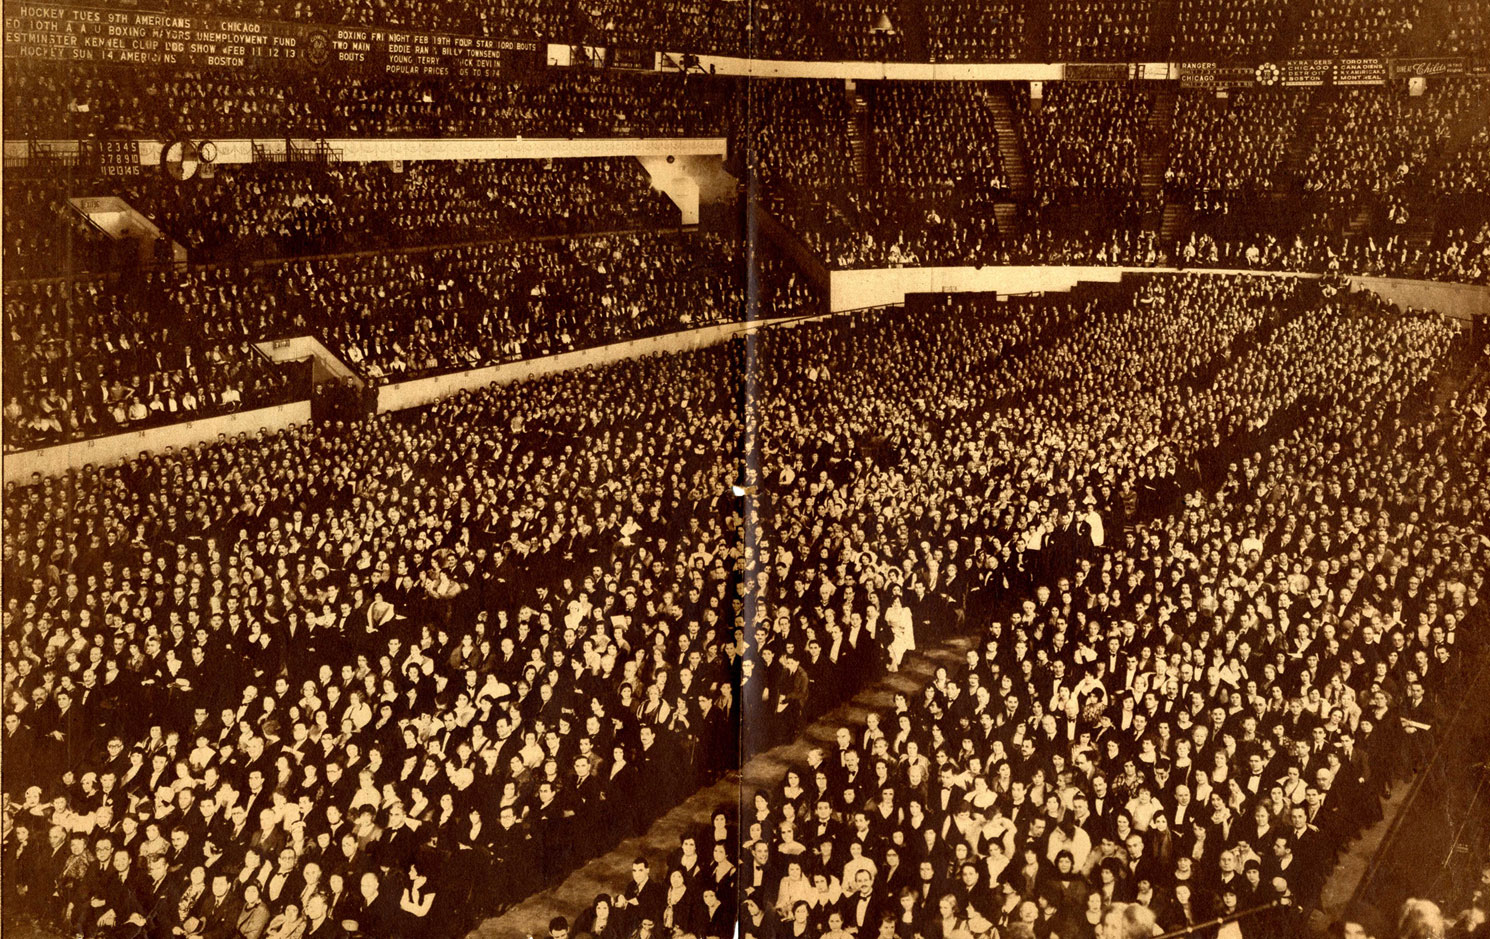 IJP_NYTimes_MadisonSqGarden_concert1932 - Polish Music Center